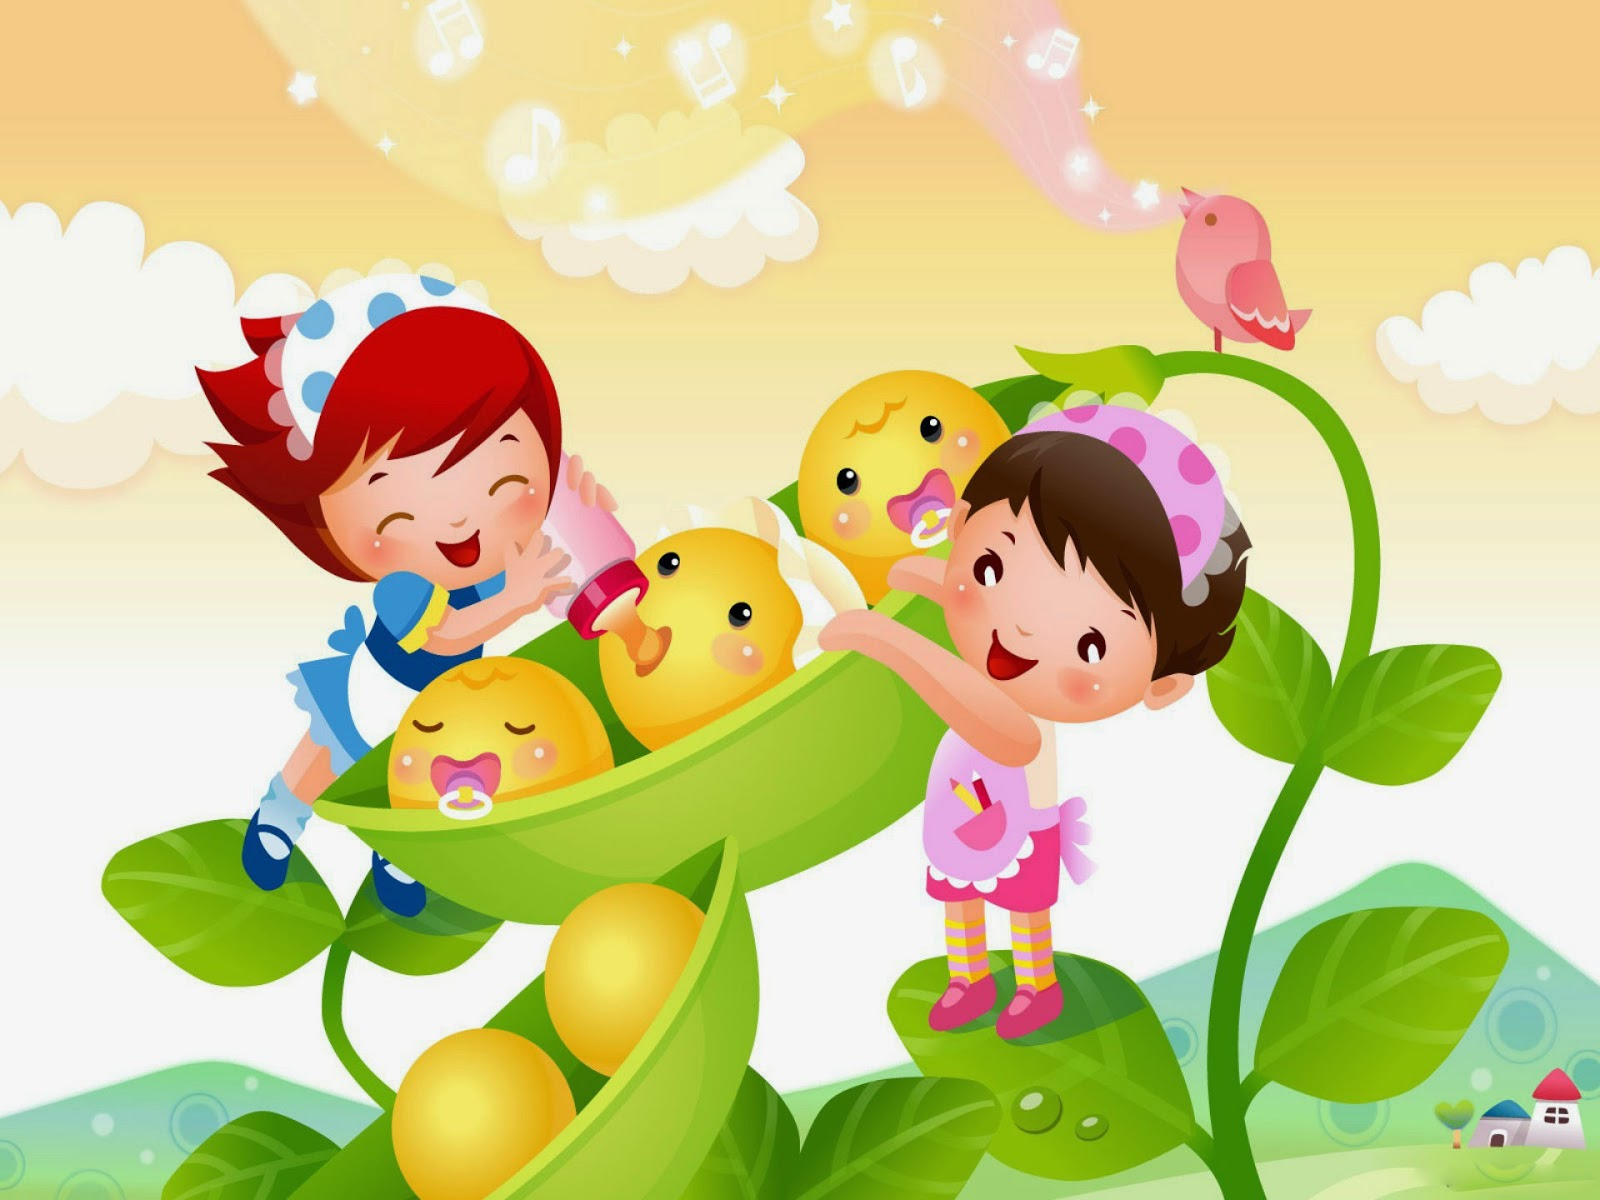 46 new hd cartoon wallpapers on wallpapersafari - Cute cartoon hd images ...